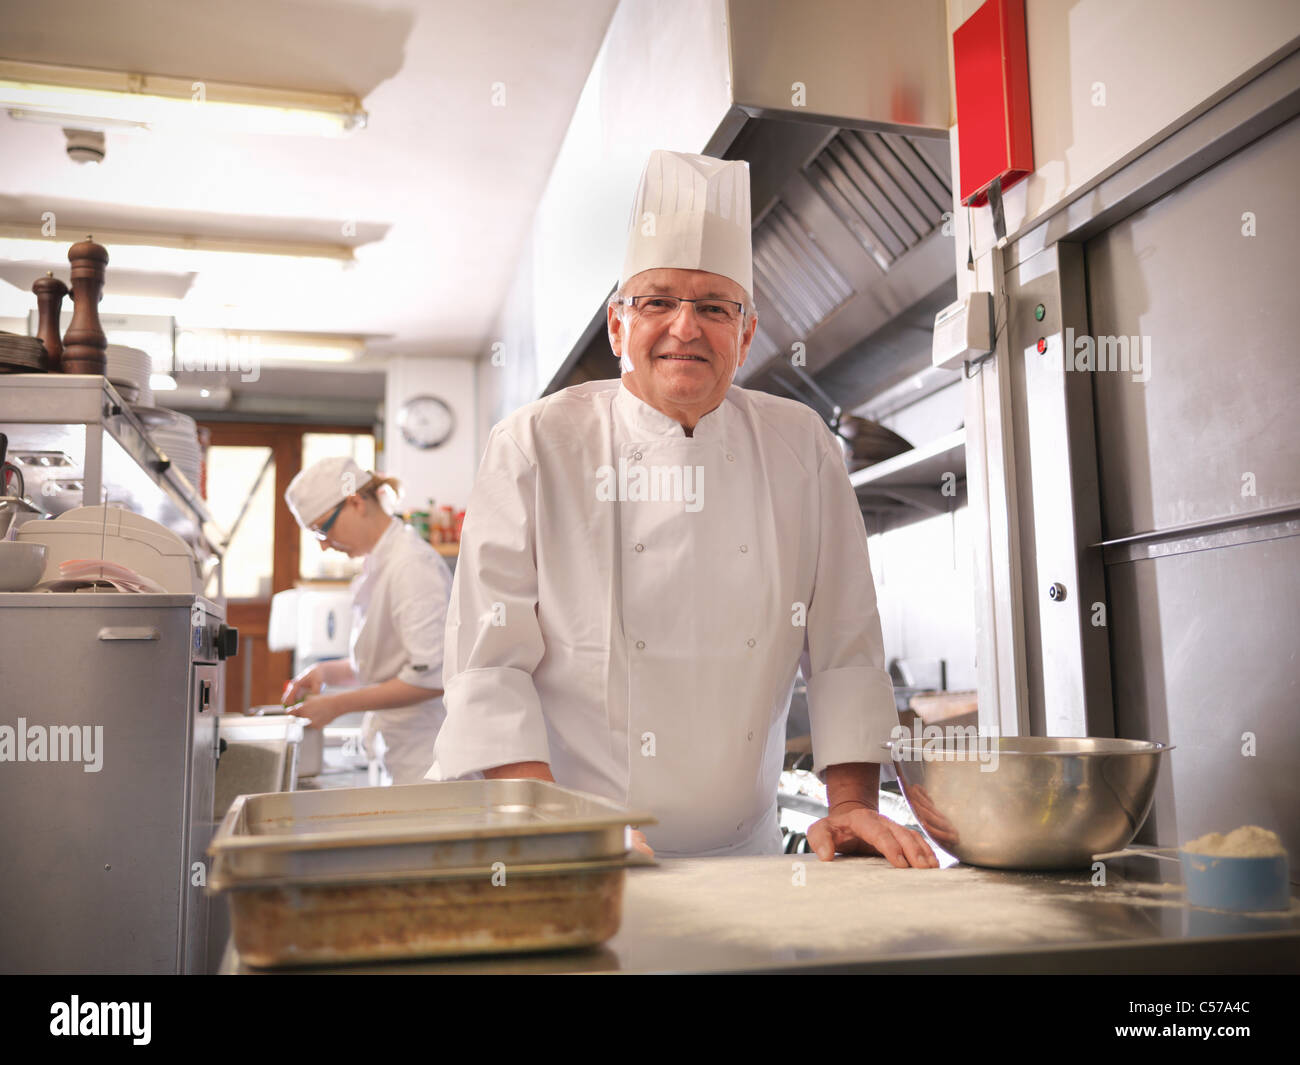 Chef smiling in restaurant kitchen - Stock Image